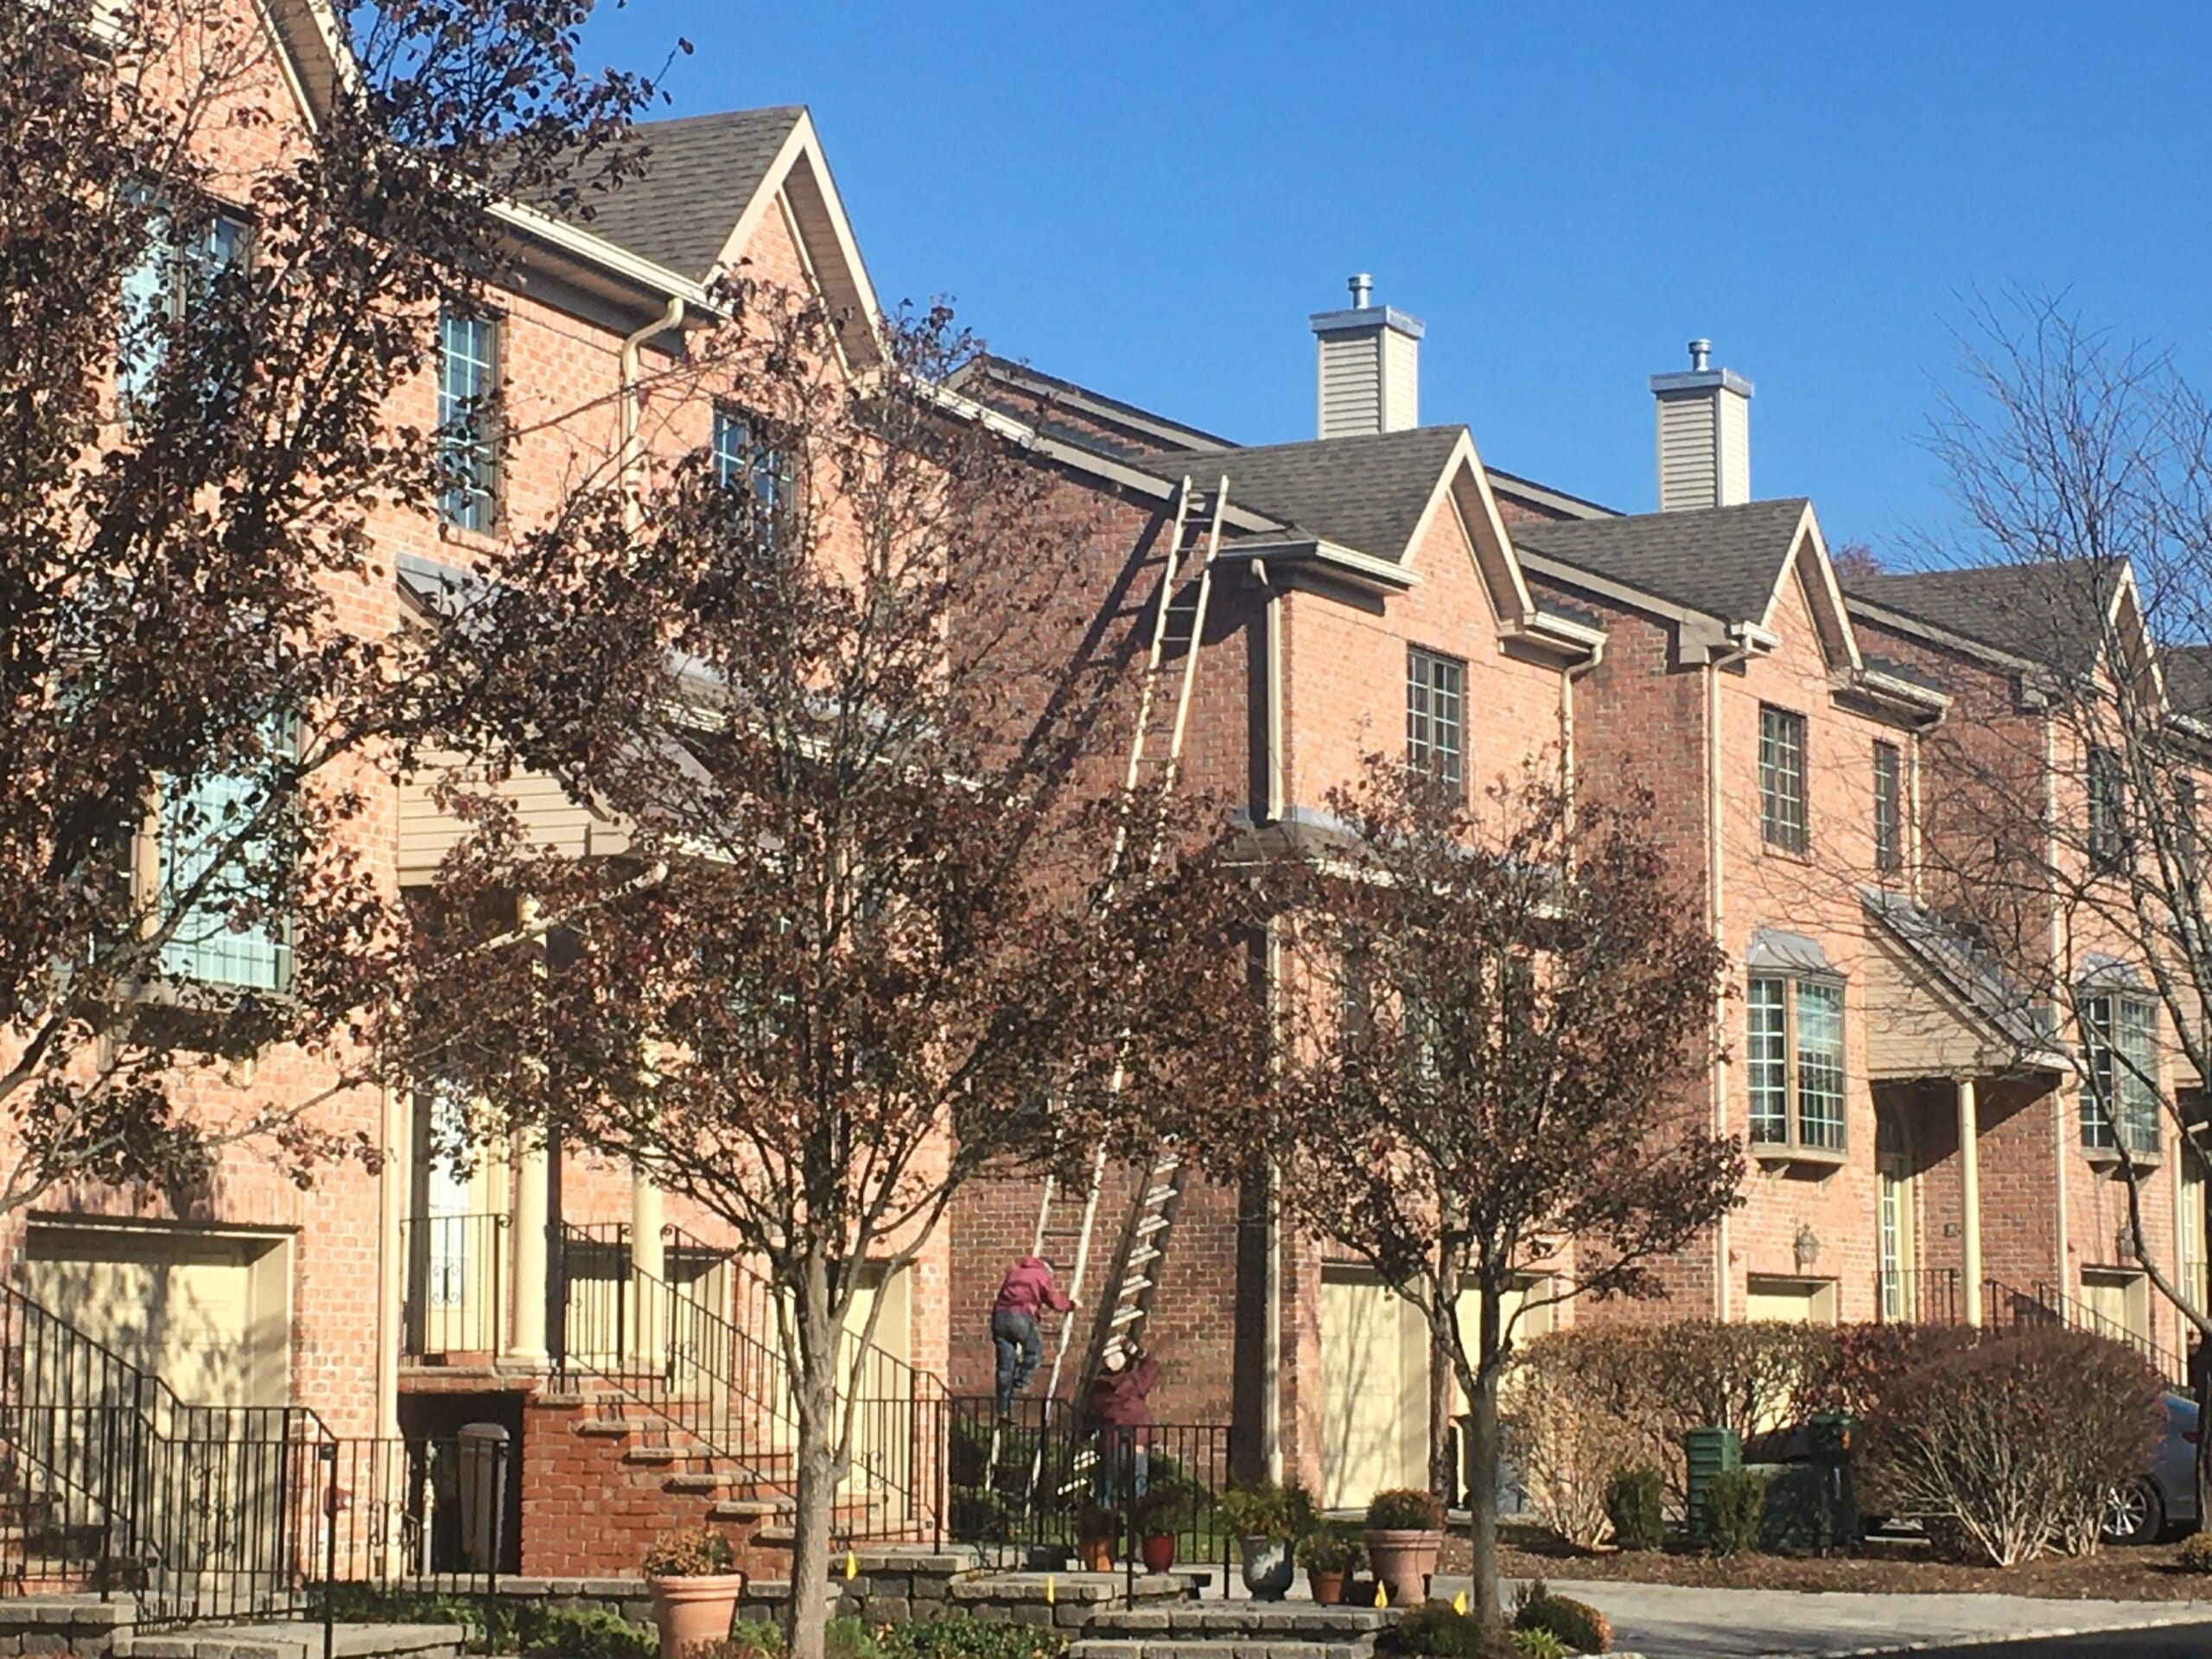 gutter cleaning of a condo complex in old tappan nj, bergen county